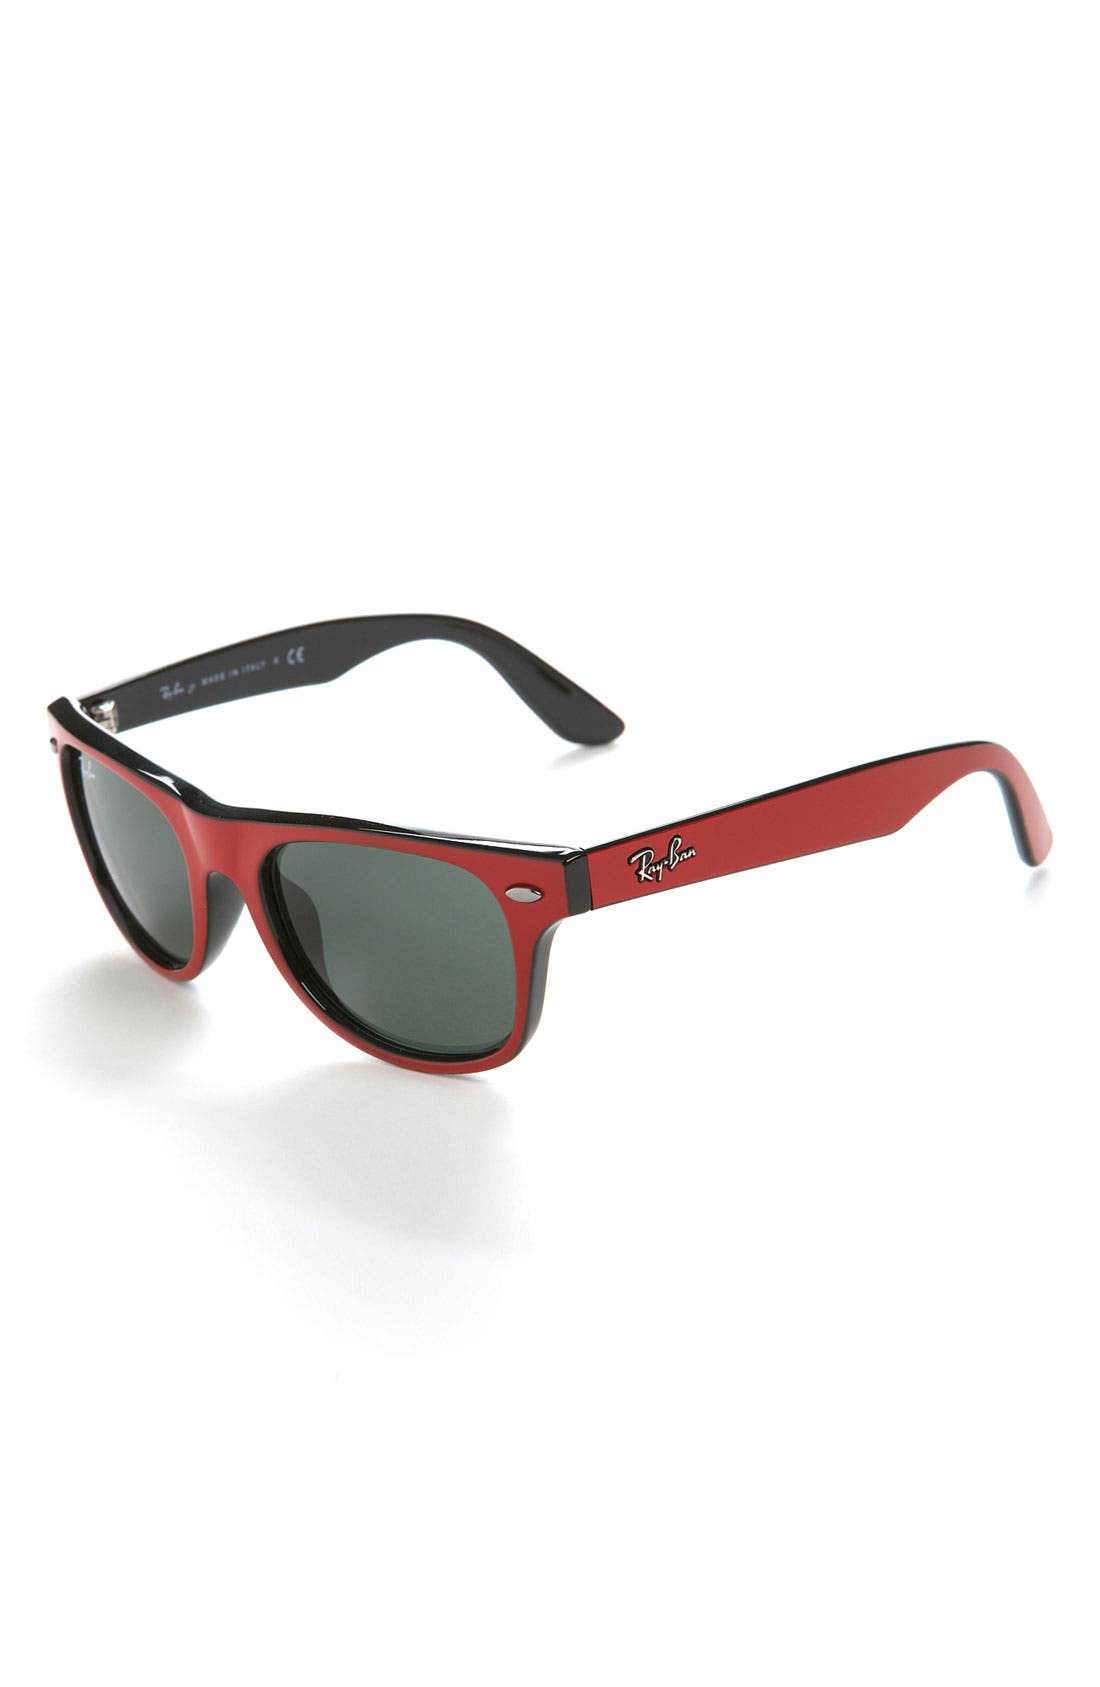 Main Image - Ray-Ban Wayfarer 44mm Sunglasses (Boys)